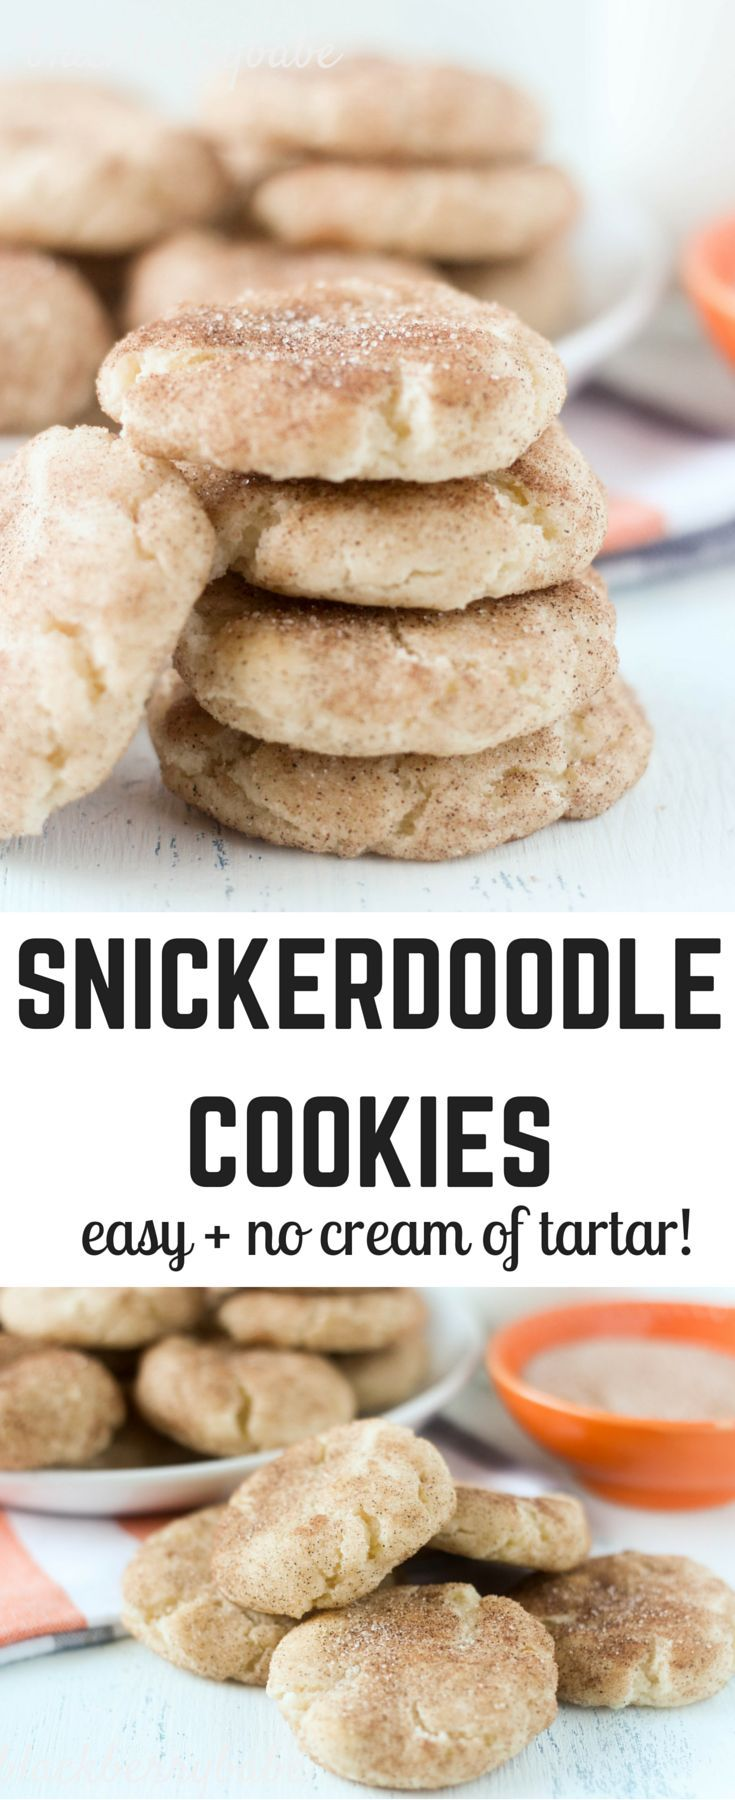 Snickerdoodle cookies- Perfect buttery cookie with cinnamon sugar coating. So easy and no cream of tartar needed! Only 5 ingredients for the cookie.